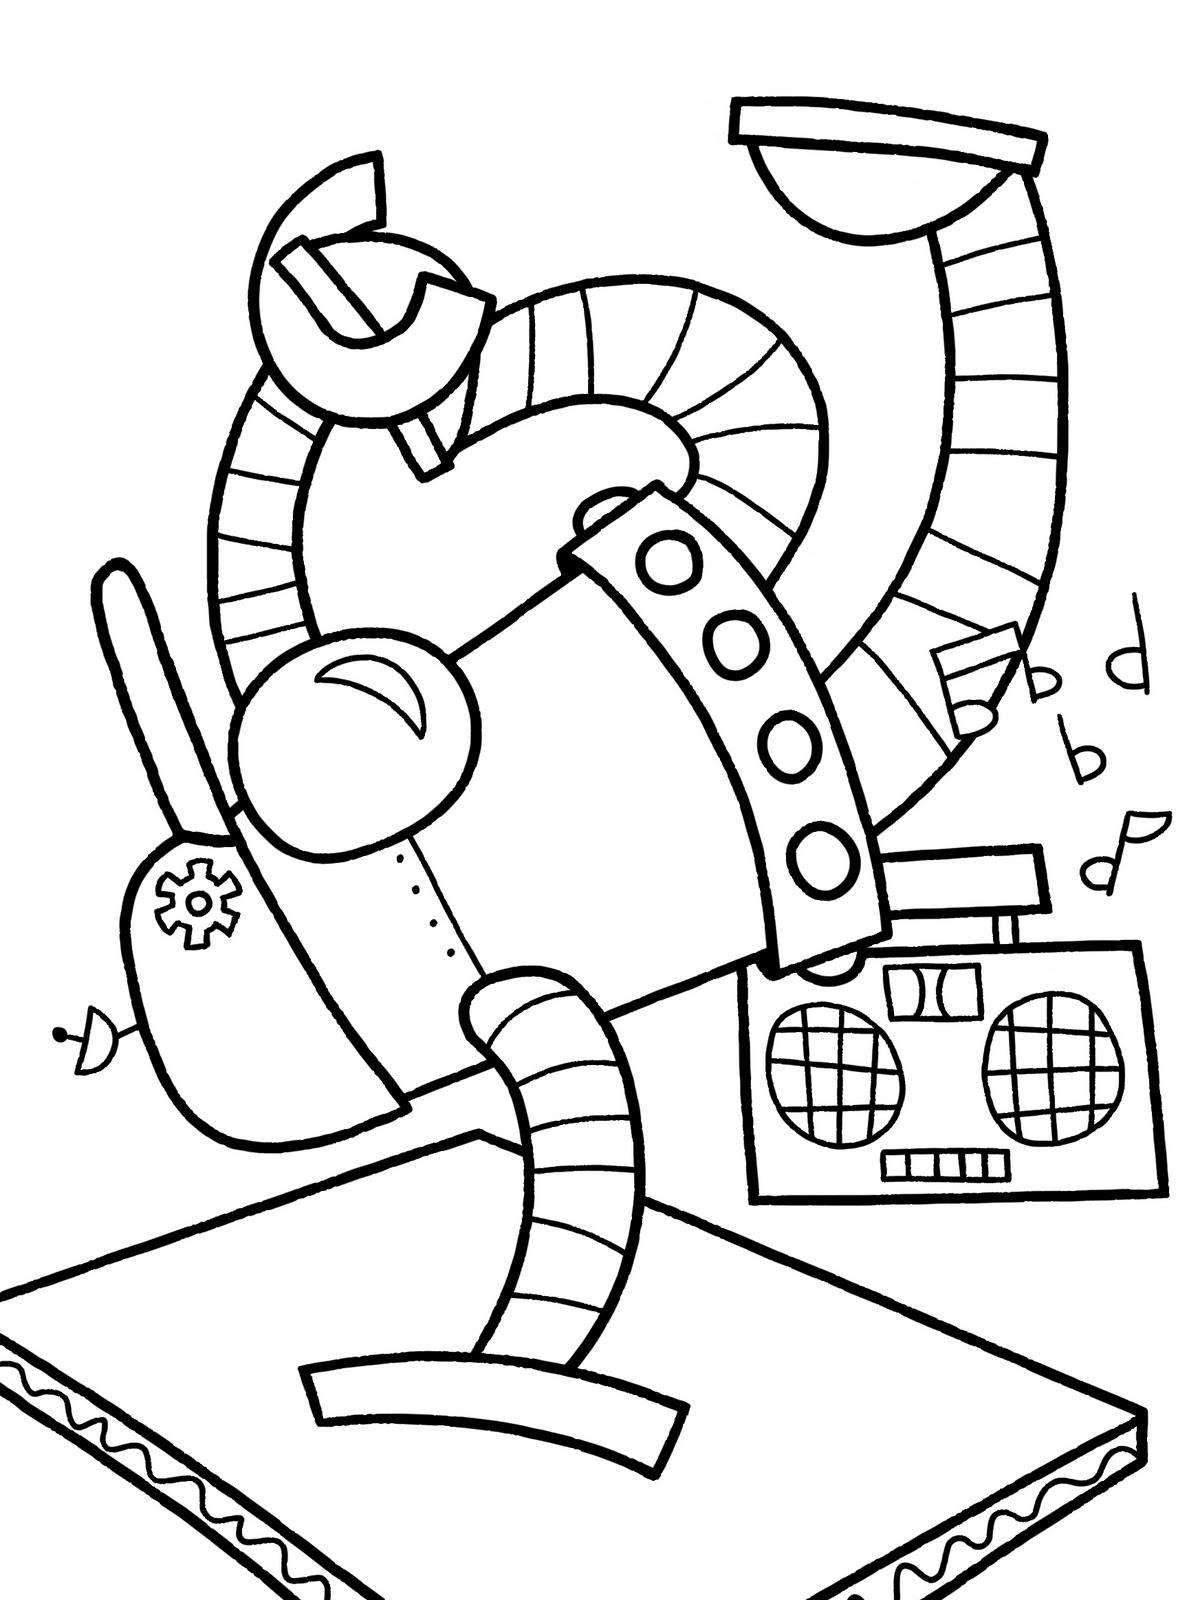 Best Colorear Godzilla Robot Coloring Pages Line Art